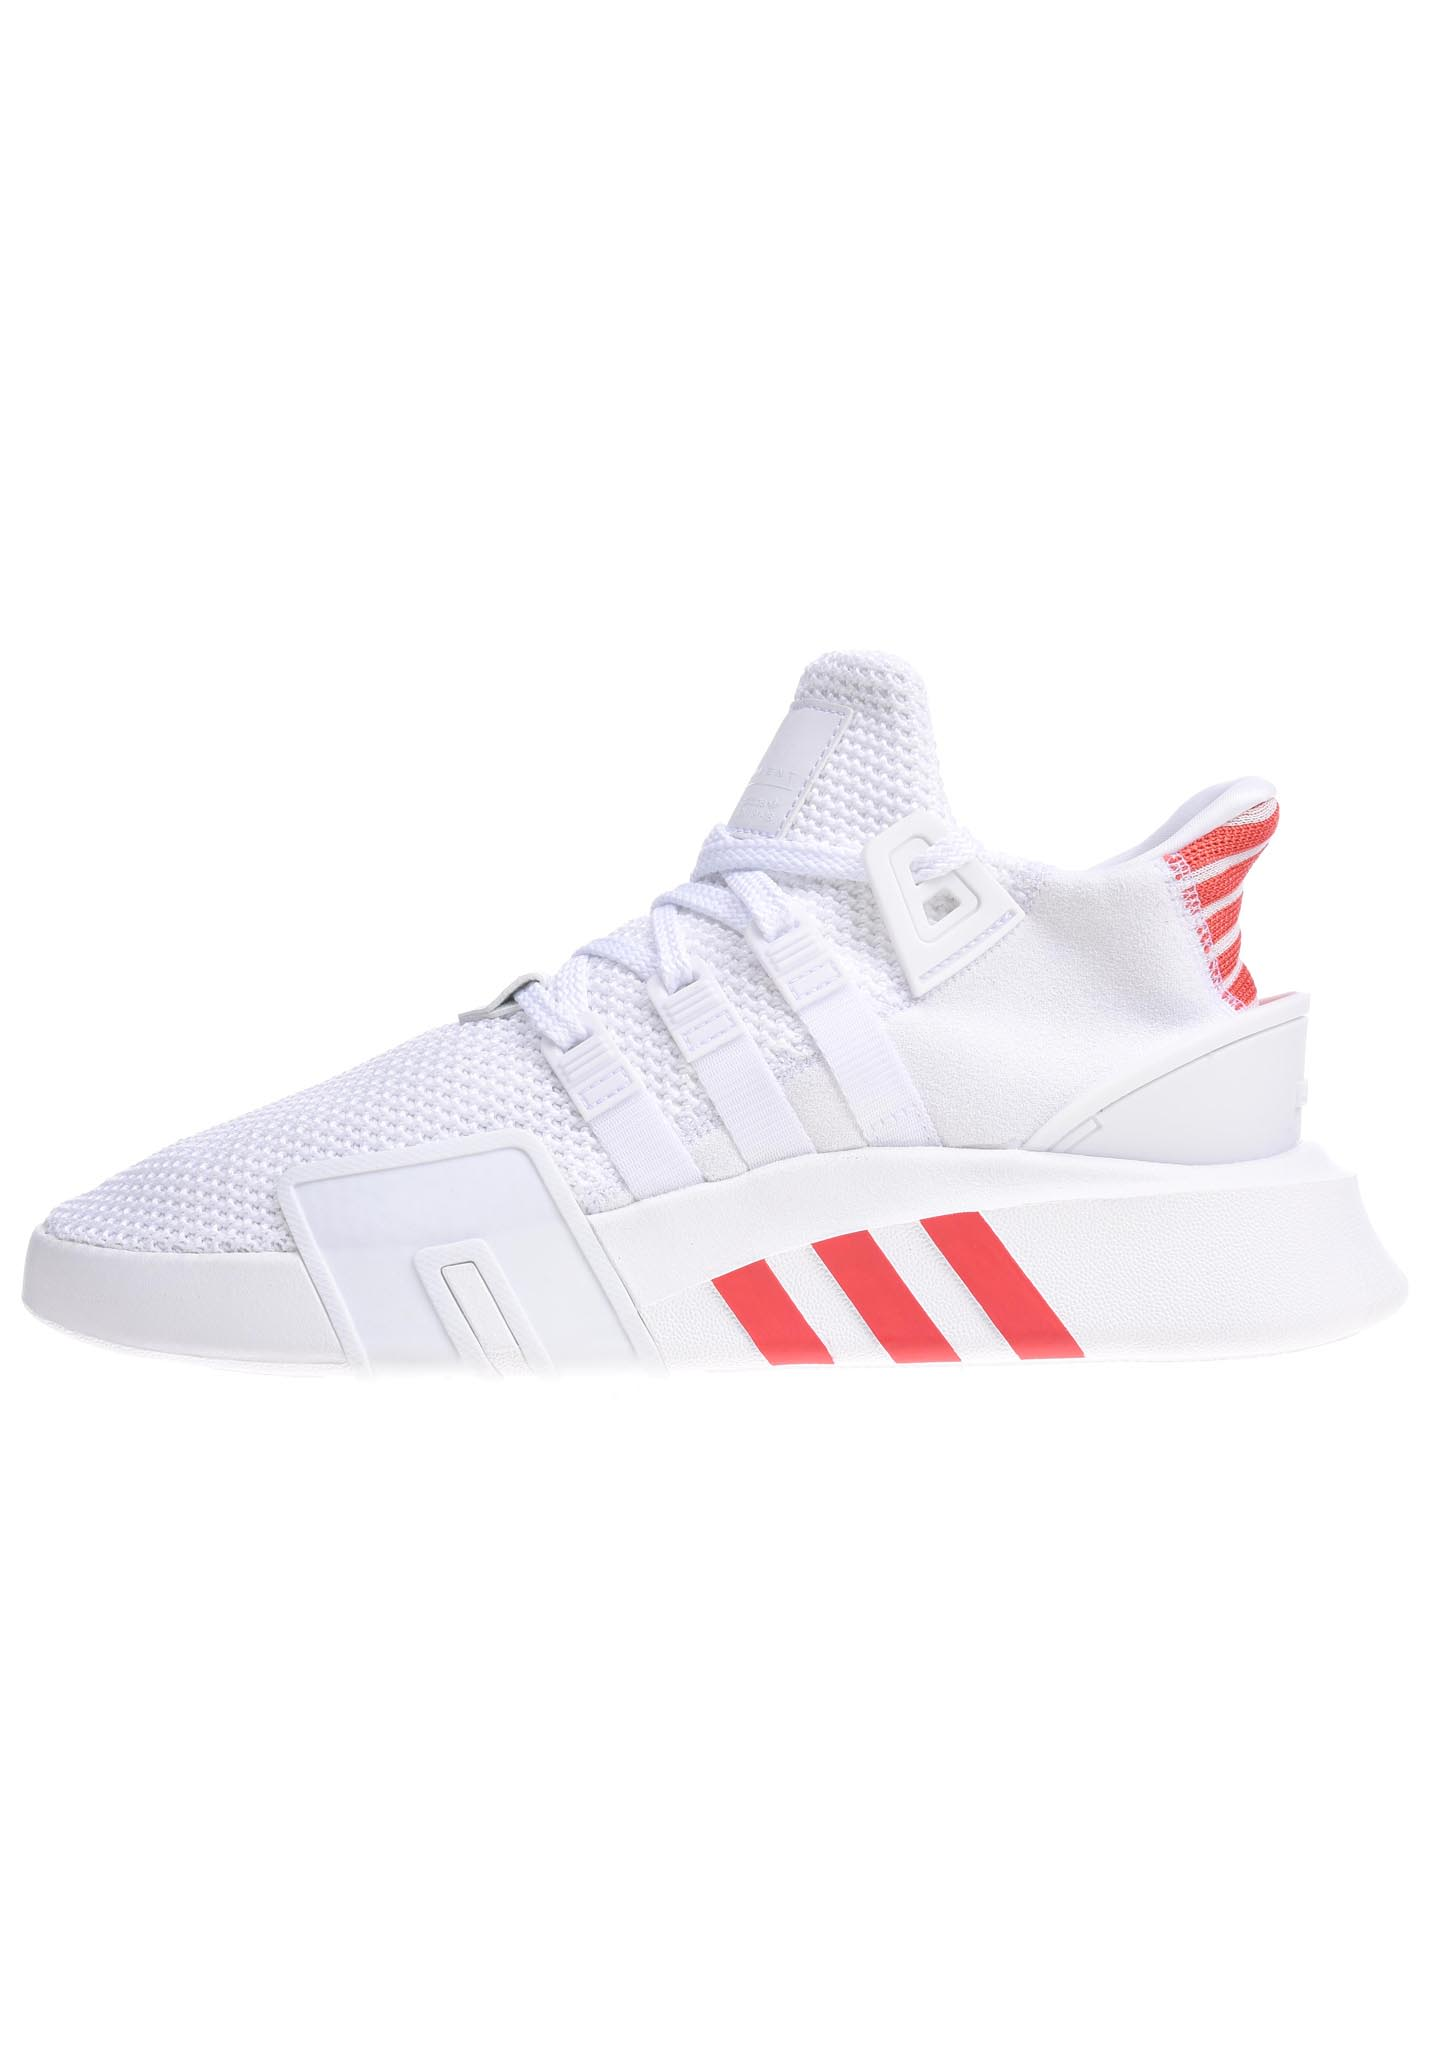 3b97562cd20c4 ADIDAS ORIGINALS Eqt Bask Adv - Baskets pour Homme - Blanc - Planet Sports